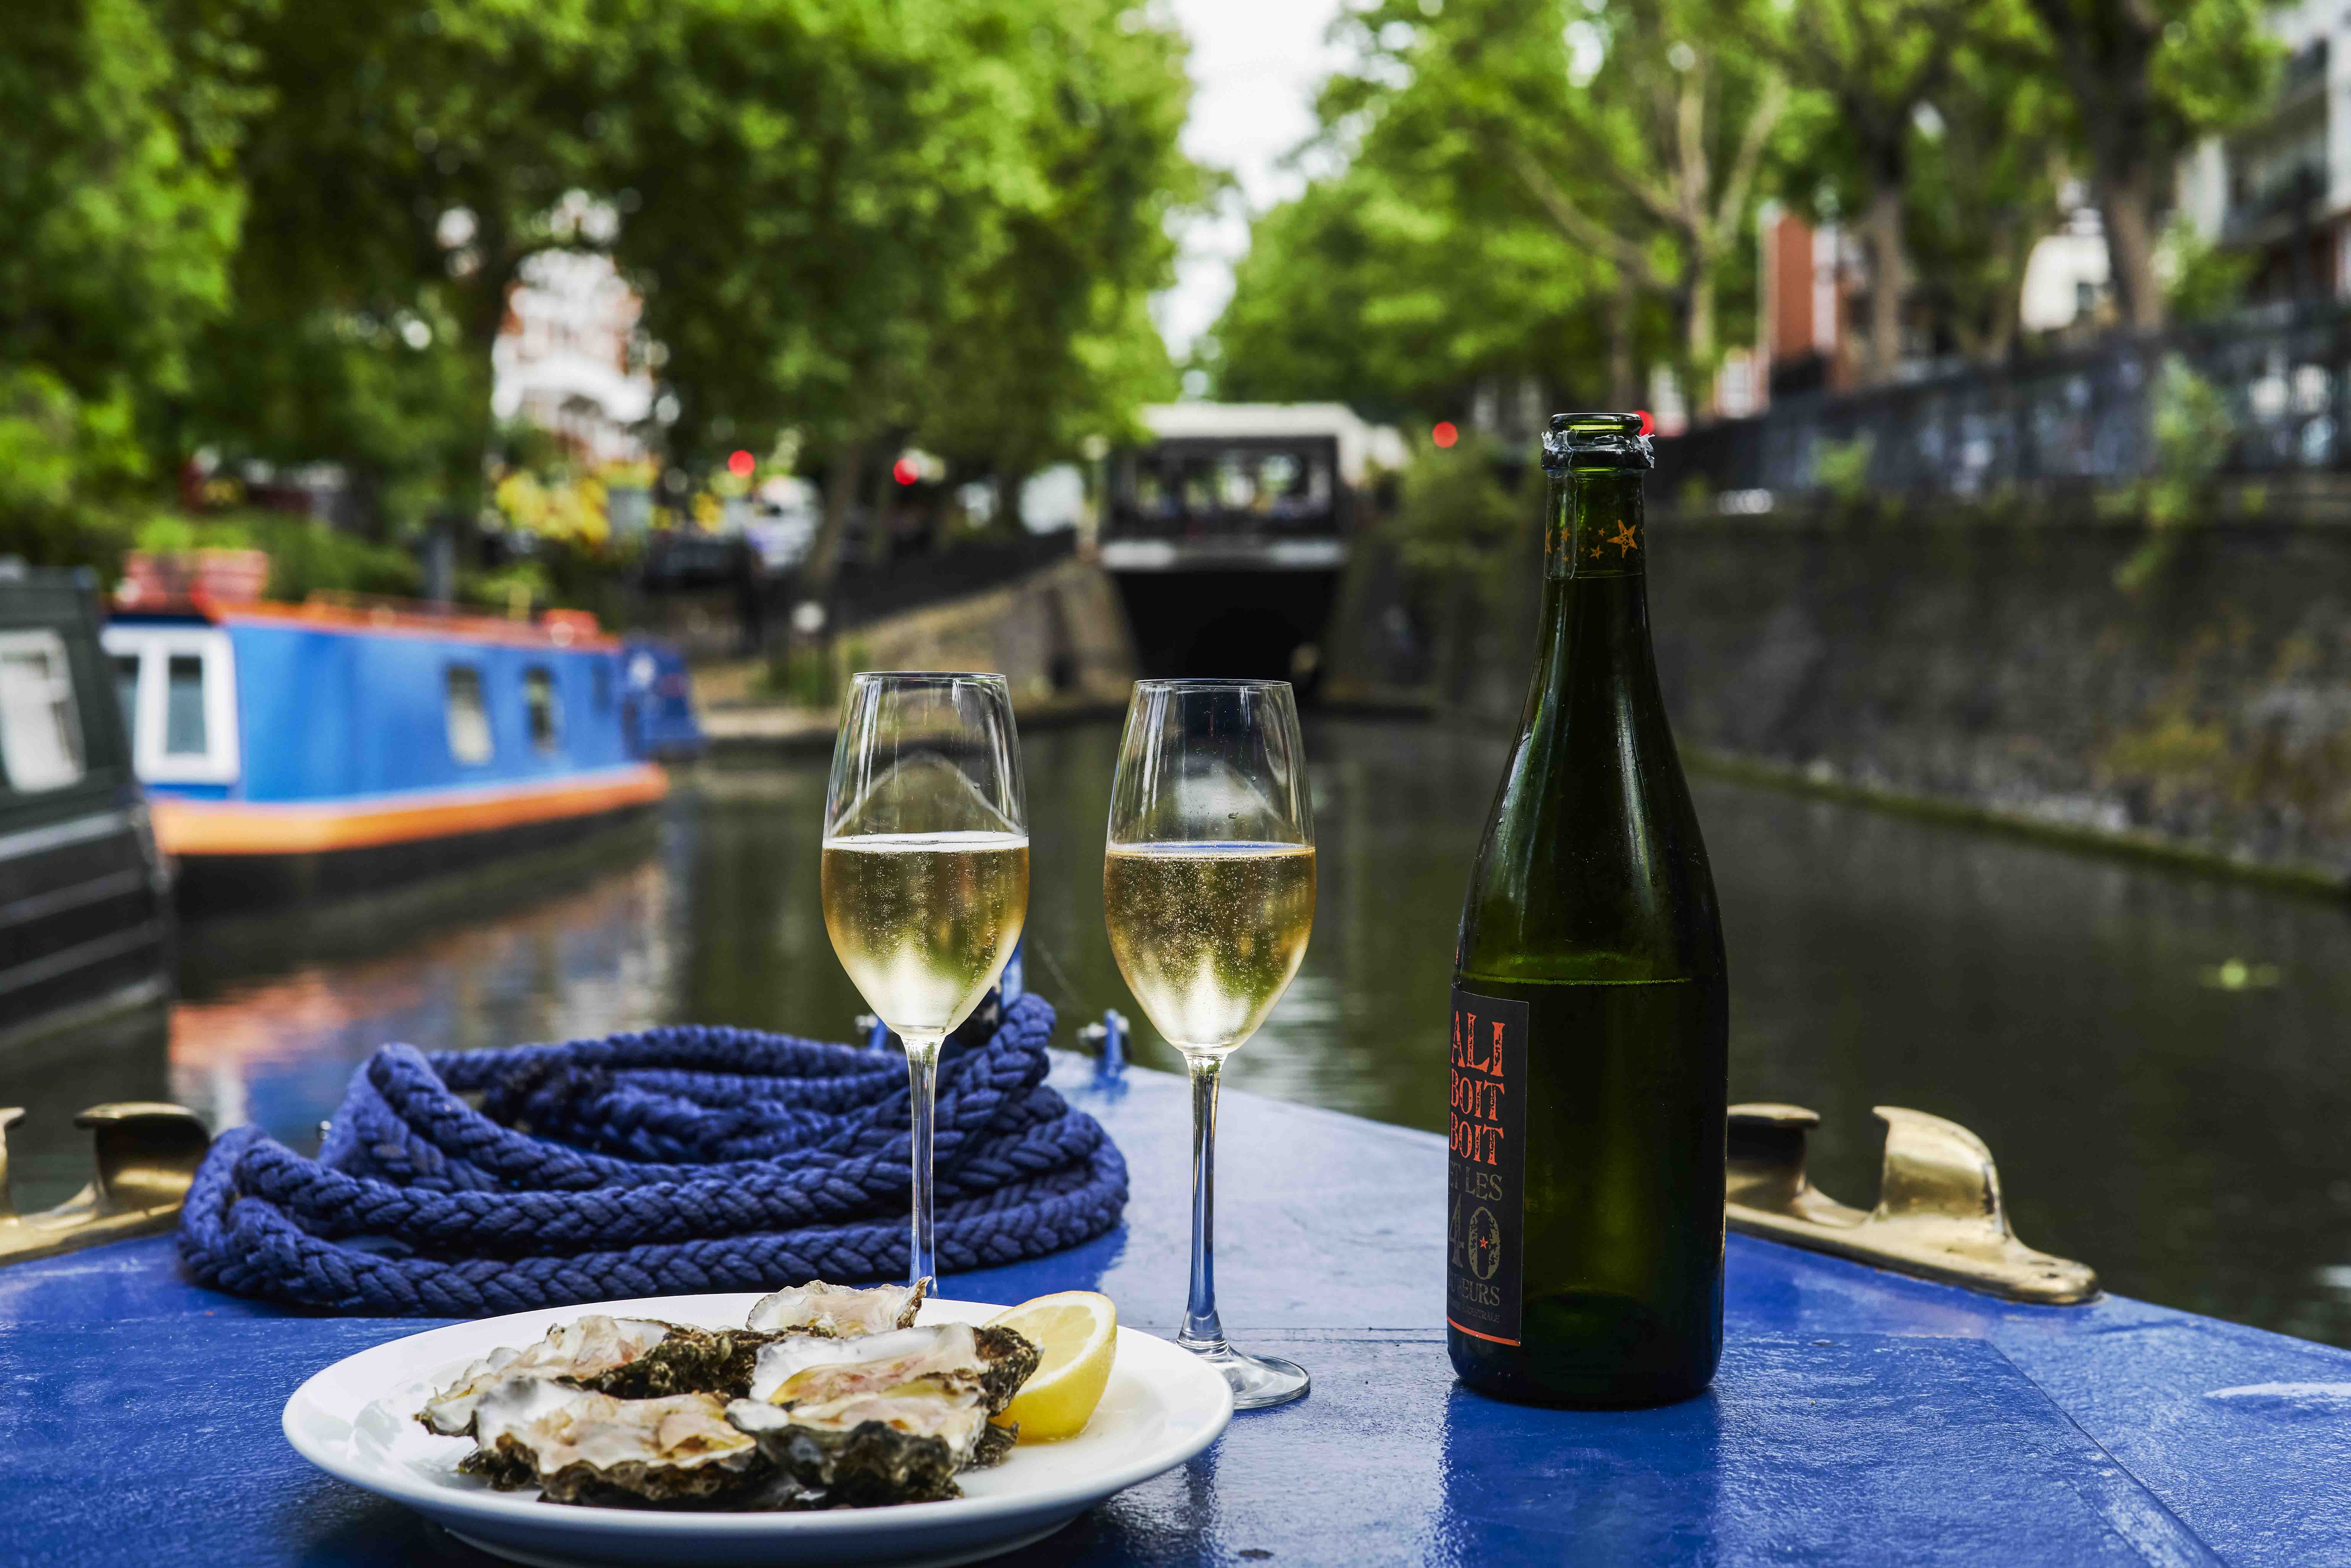 Two glasses of sparkling wine and a plate of oysters on the front of a barge on the canal